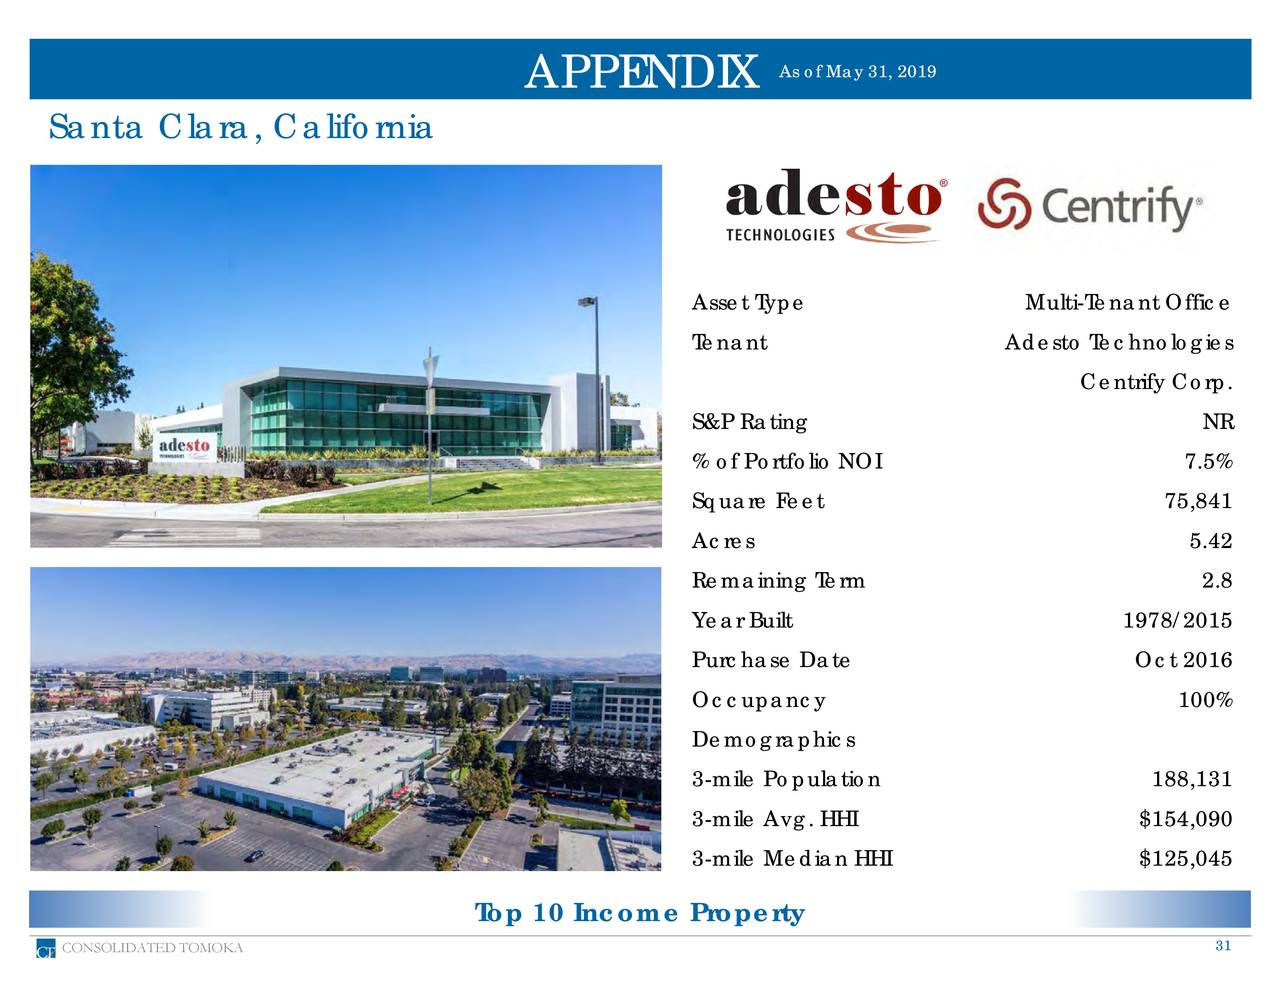 APPENDIX Santa Clara, California Asset Type Multi-Tenant Office Tenant Adesto Technologies Centrify Corp. S&P Rating NR % of Portfolio NOI 7.5% Square Feet 75,841 Acres 5.42 Remaining Term 2.8 Year Built 1978/2015 Purchase Date Oct 2016 Occupancy 100% Demographics 3-mile Population 188,131 3-mile Avg. HHI $154,090 3-mile Median HHI $125,045 Top 10 Income Property CONSOLIDATED TOMOKA 31